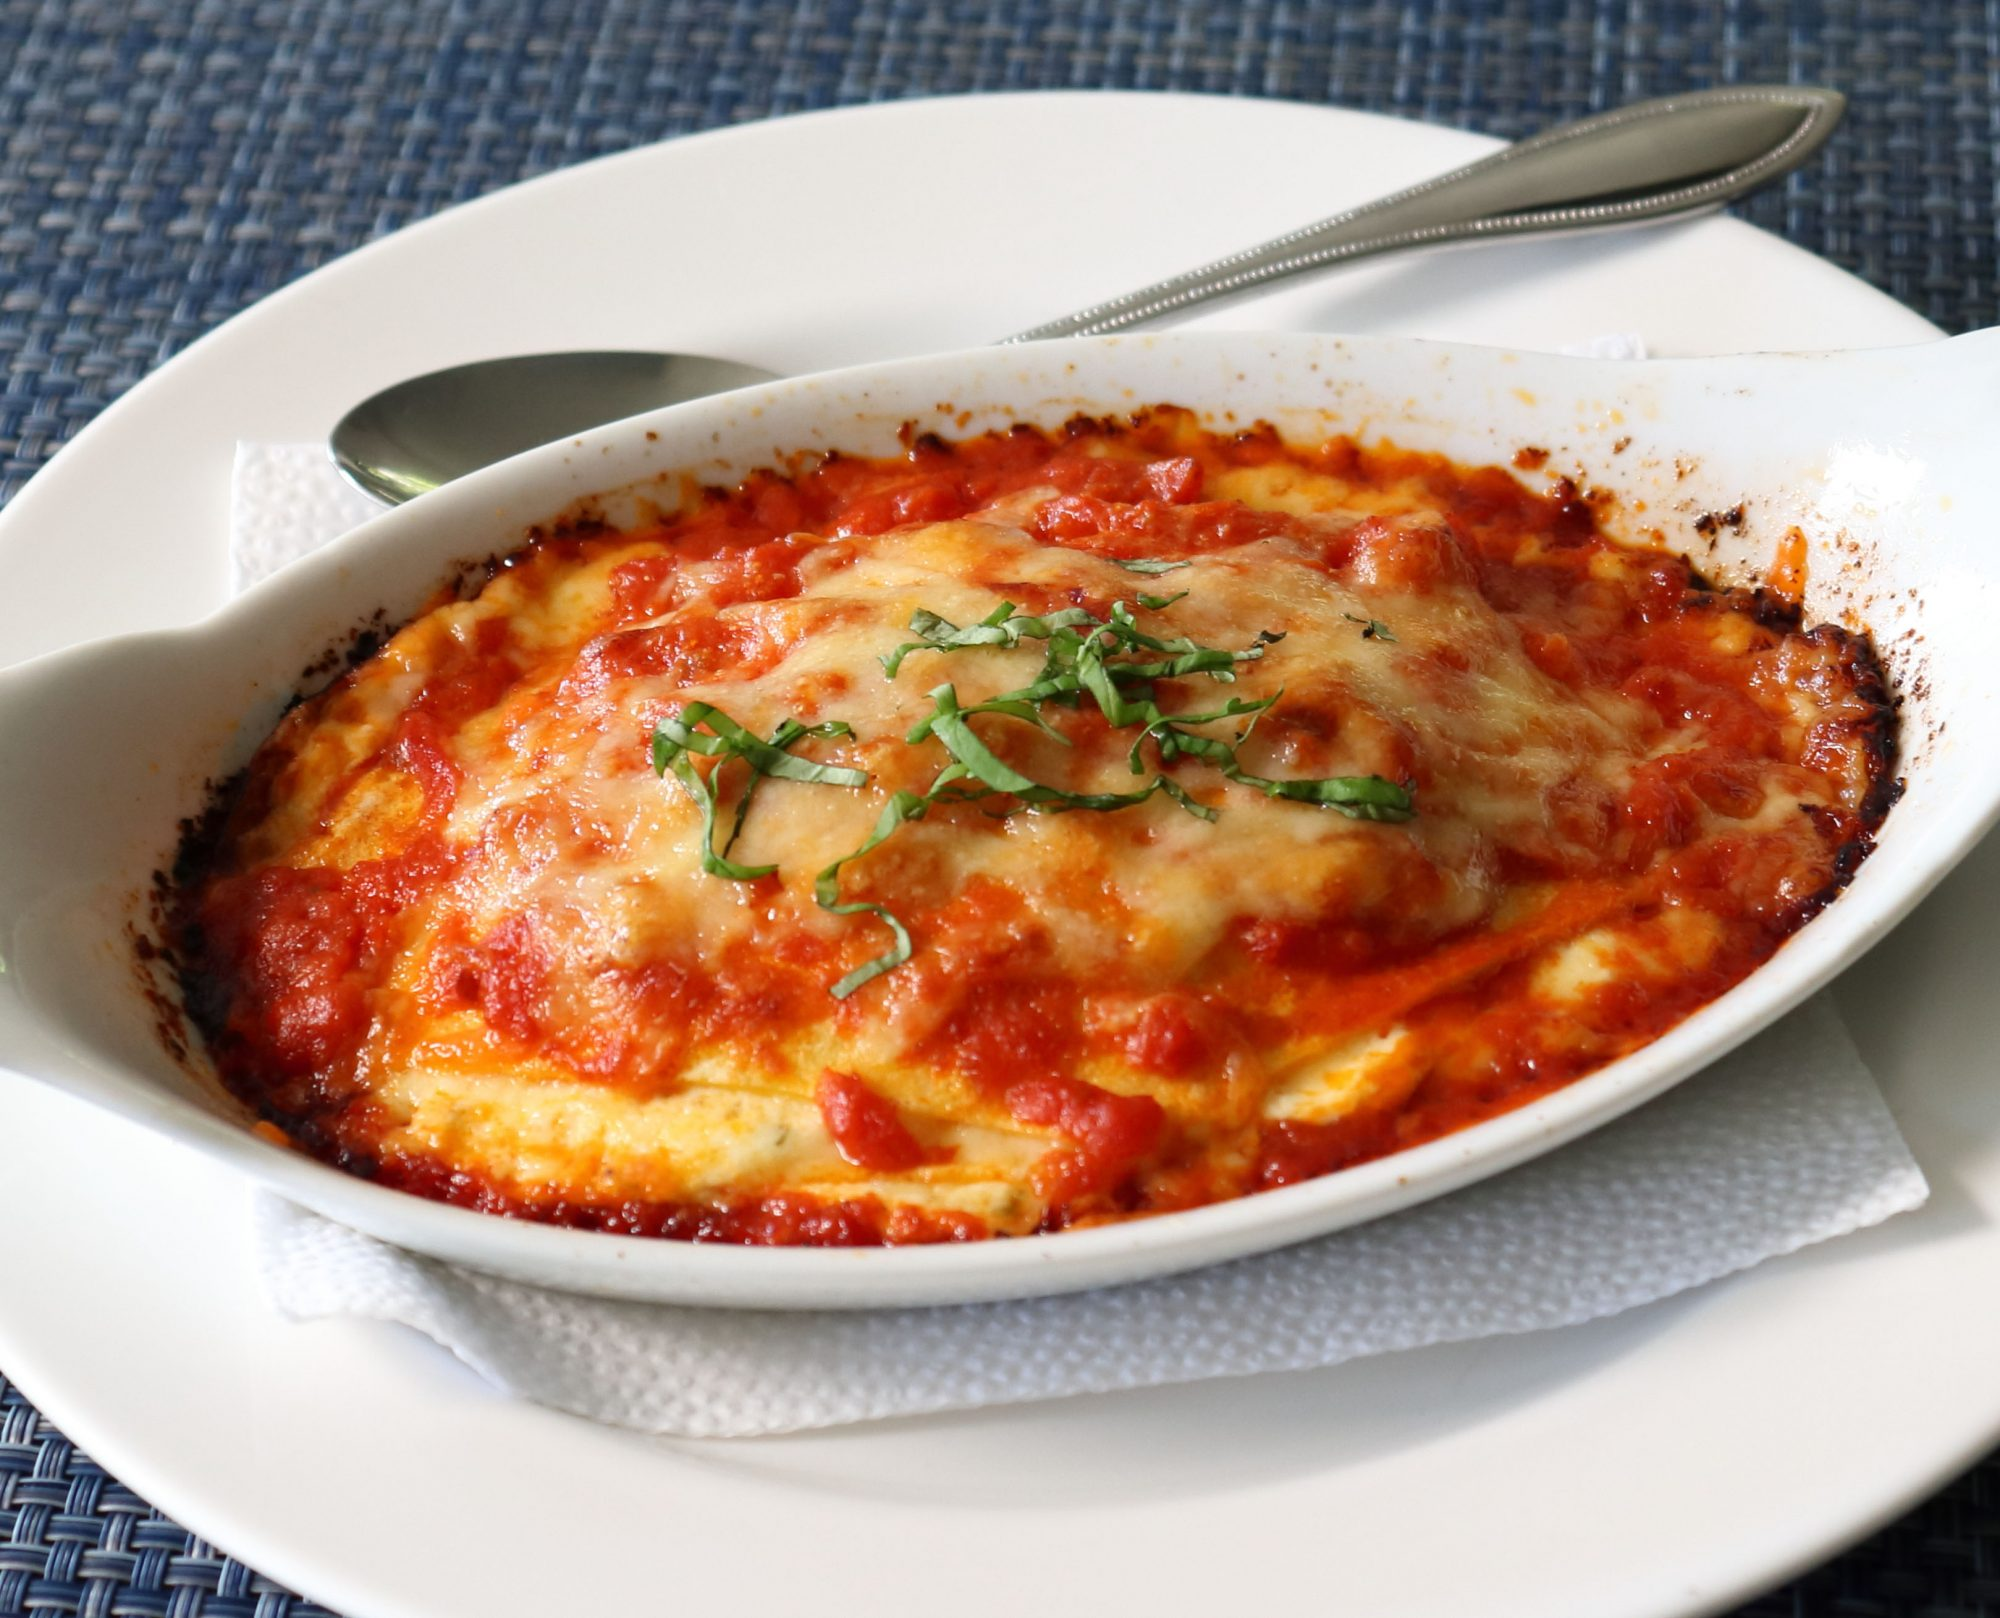 top-down view of an oval ramekin on lasagna on a white plate